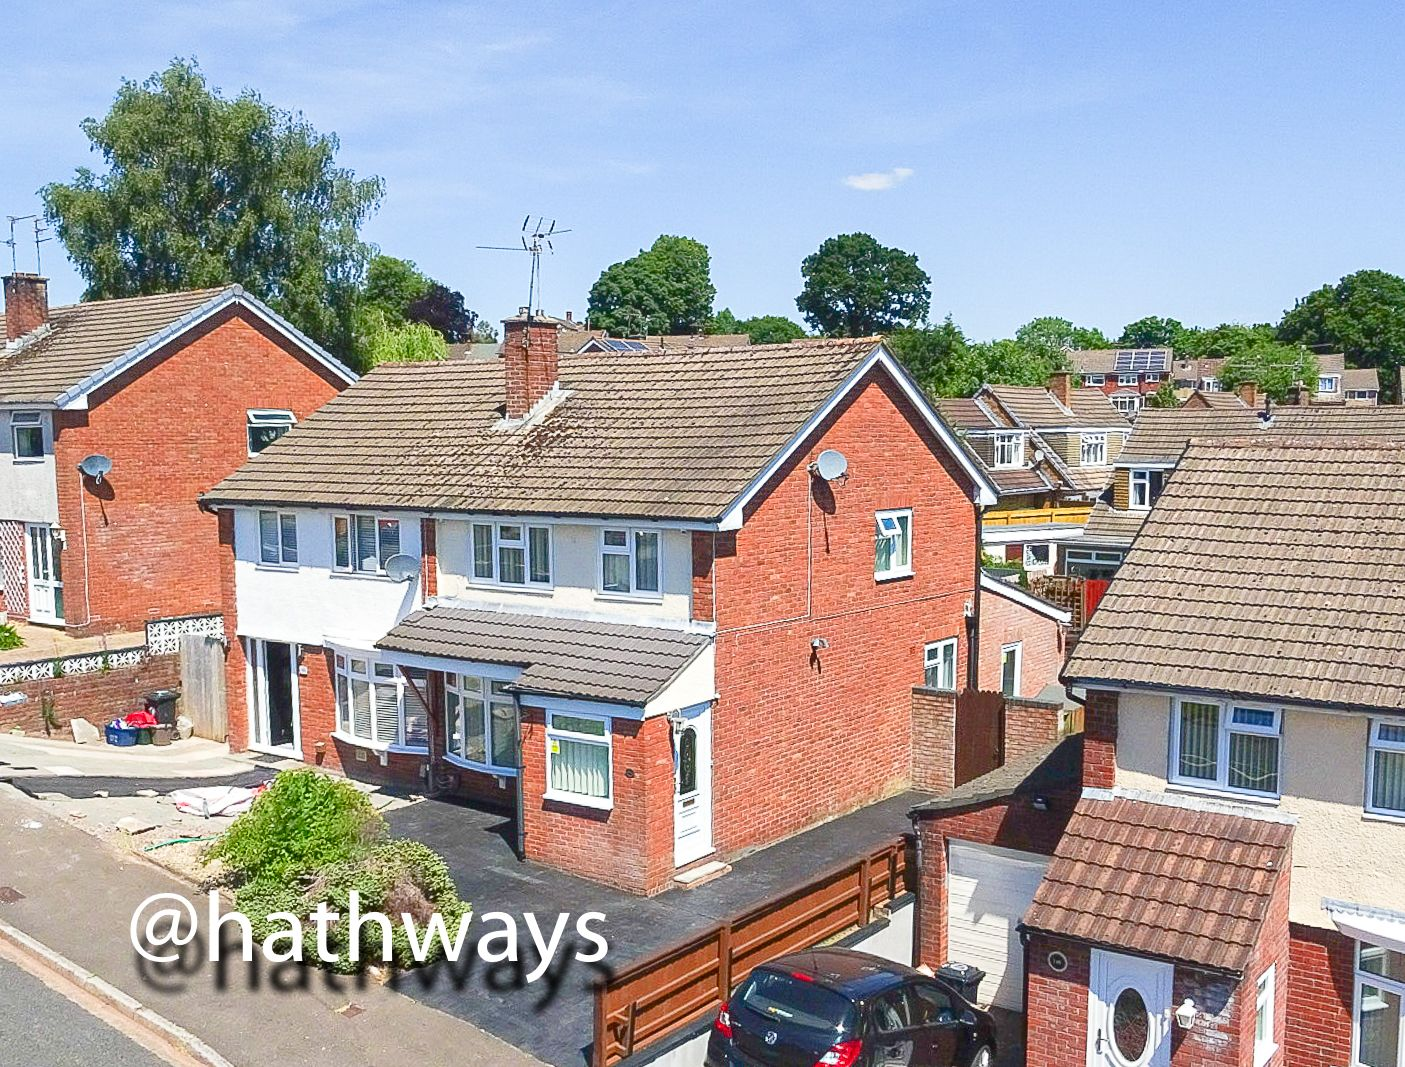 3 bed house for sale in Rowan Way, NP20